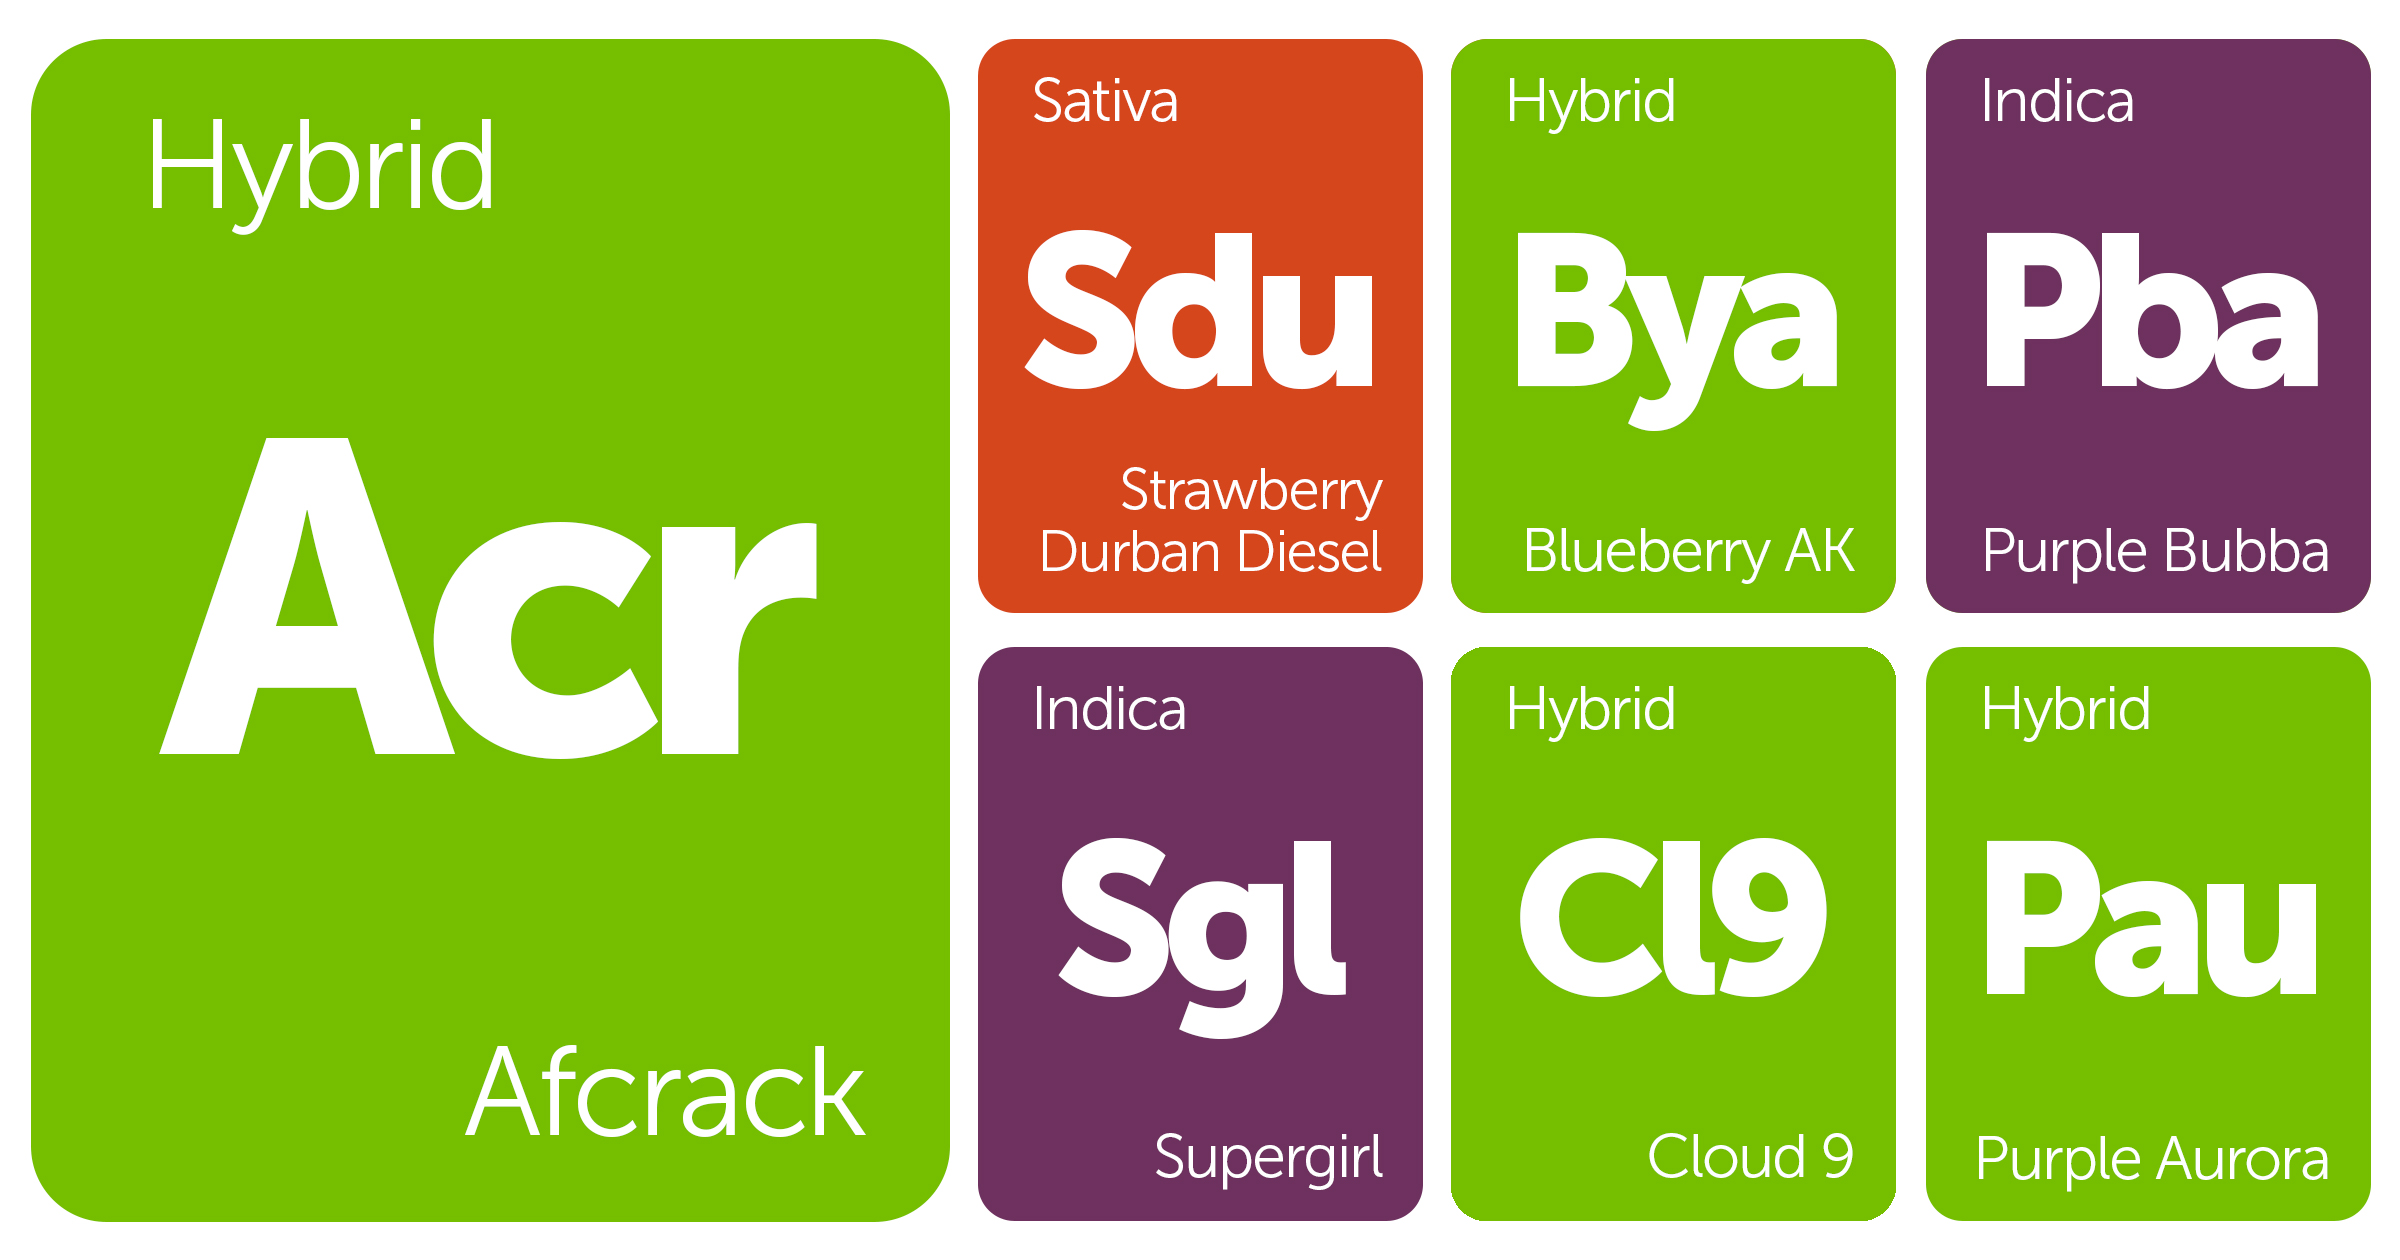 New Strains Alert: Afcrack, Purple Bubba, Blueberry AK, Cloud 9, and More